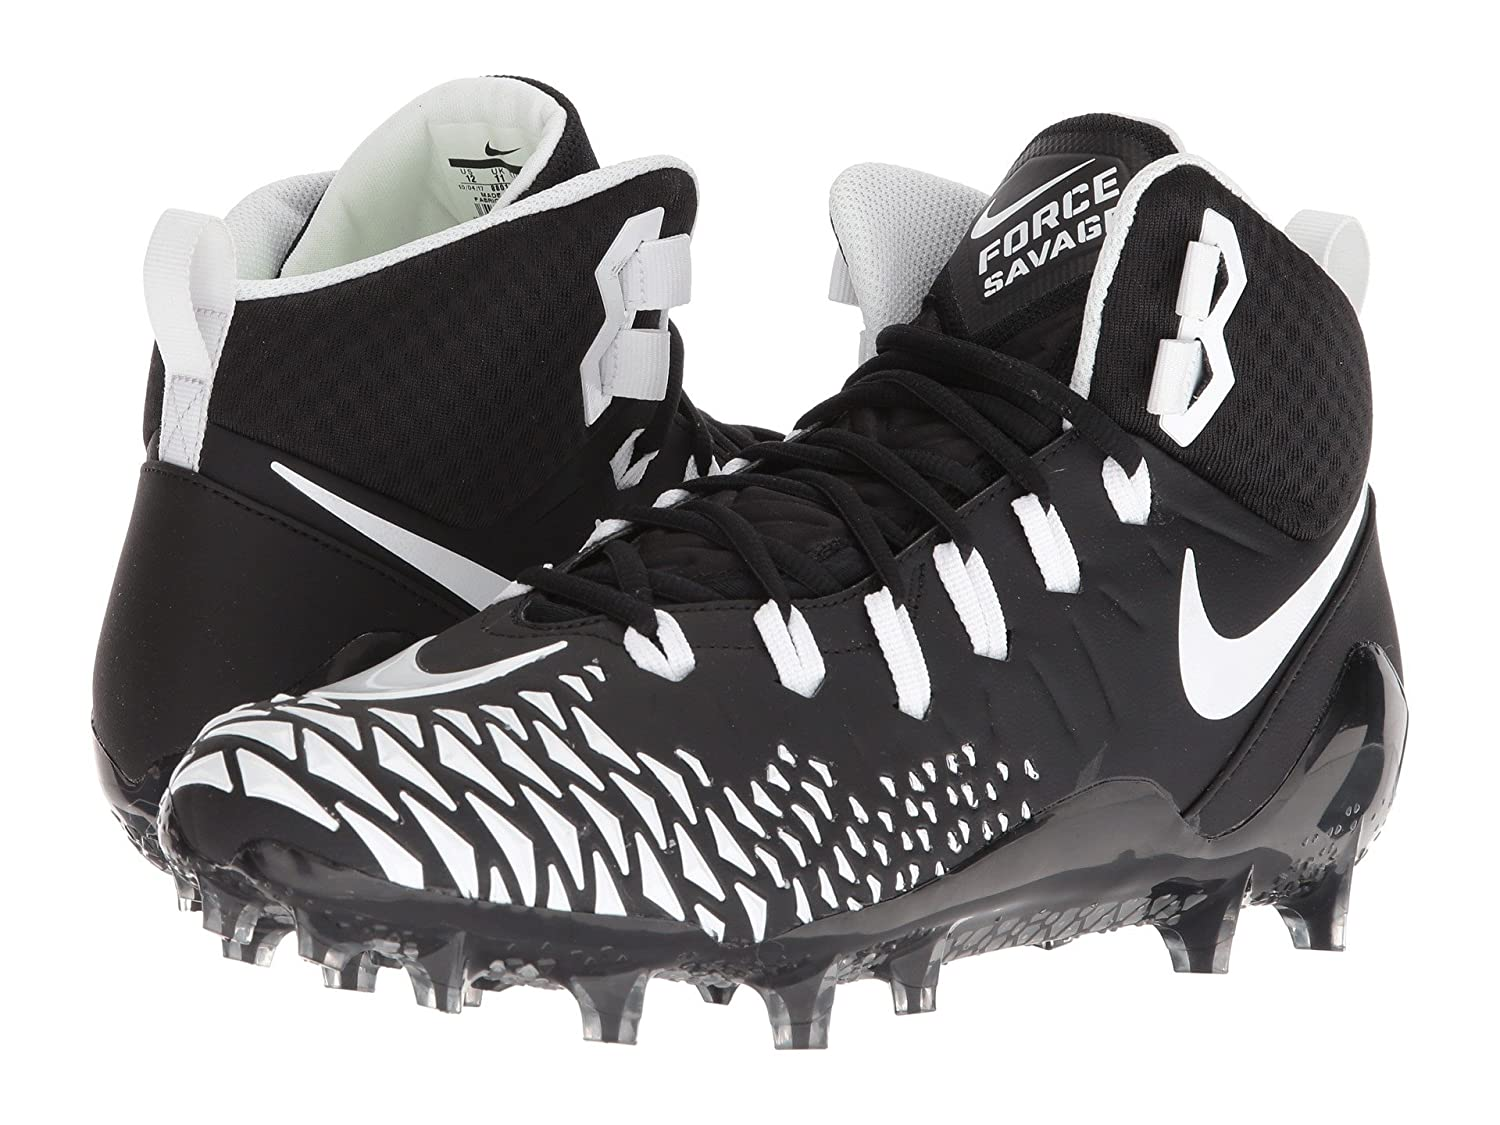 (ナイキ) NIKE メンズフットボールアメフトシューズ靴 Force Savage Pro Black/White/Black/Black 8.5 (26.5cm) D - Medium B07CP7S37V